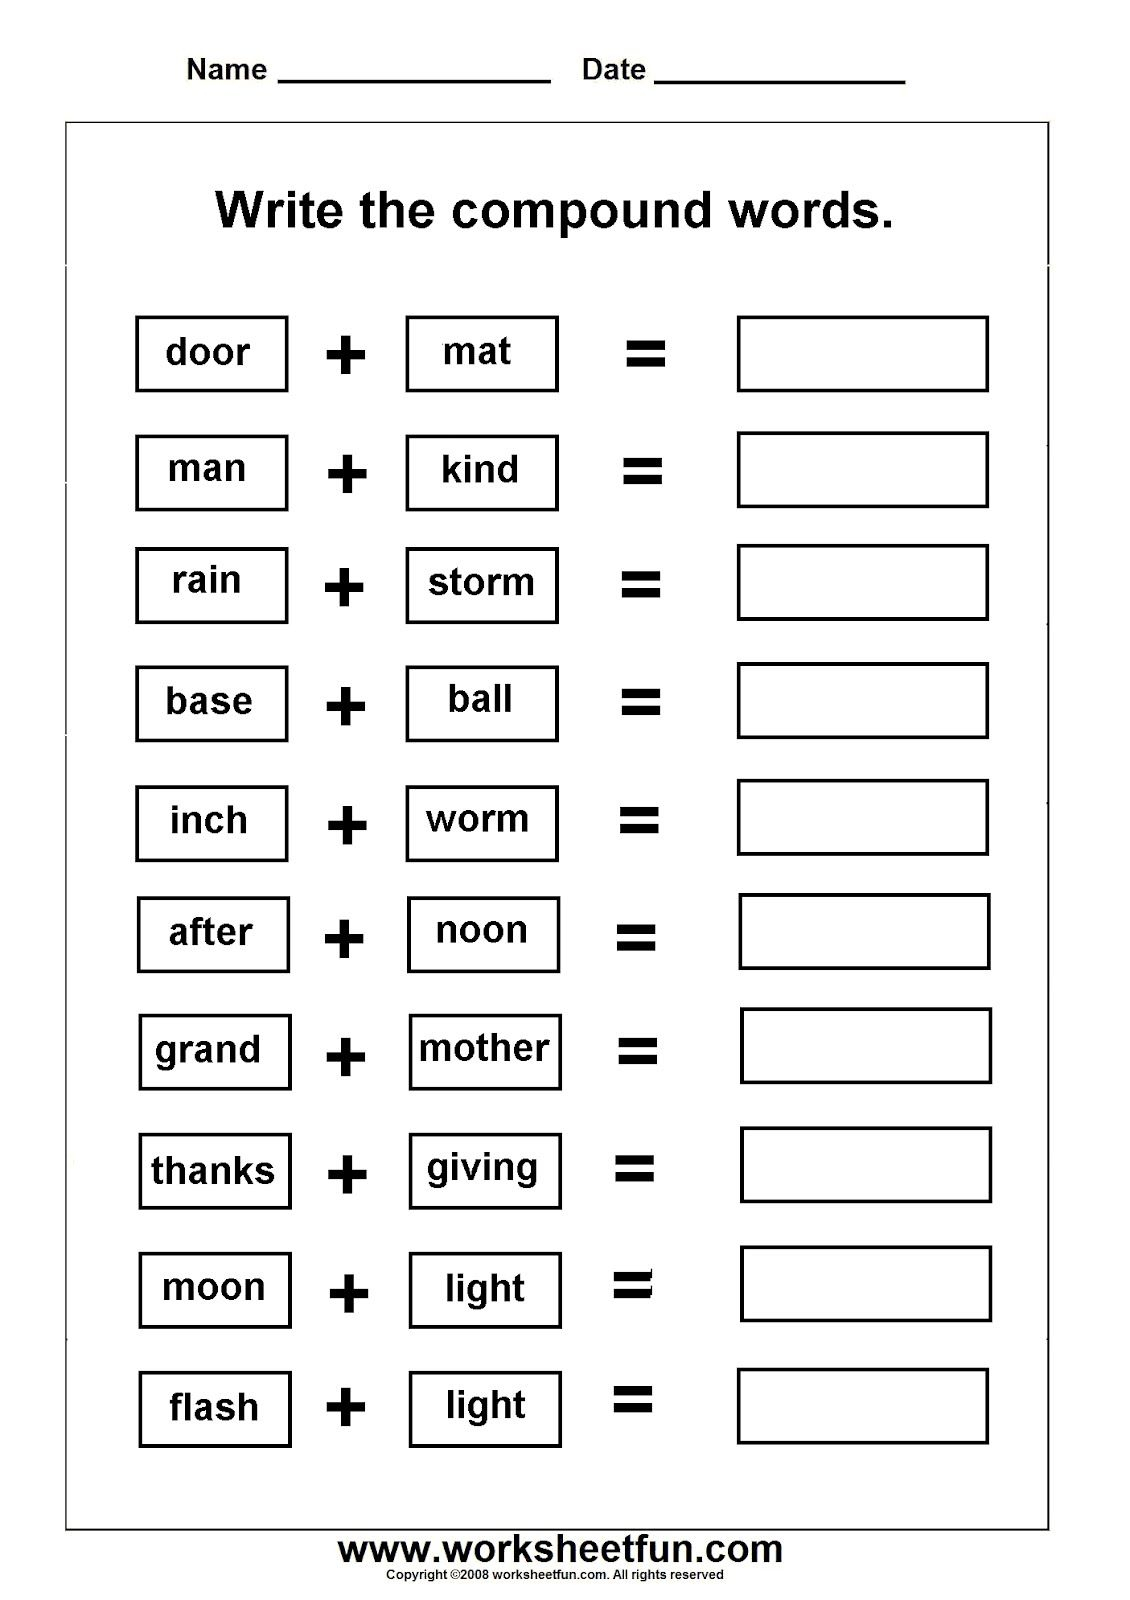 Worksheets On Compound Words With Pictures | Ela Activities | Free Printable Compound Word Worksheets